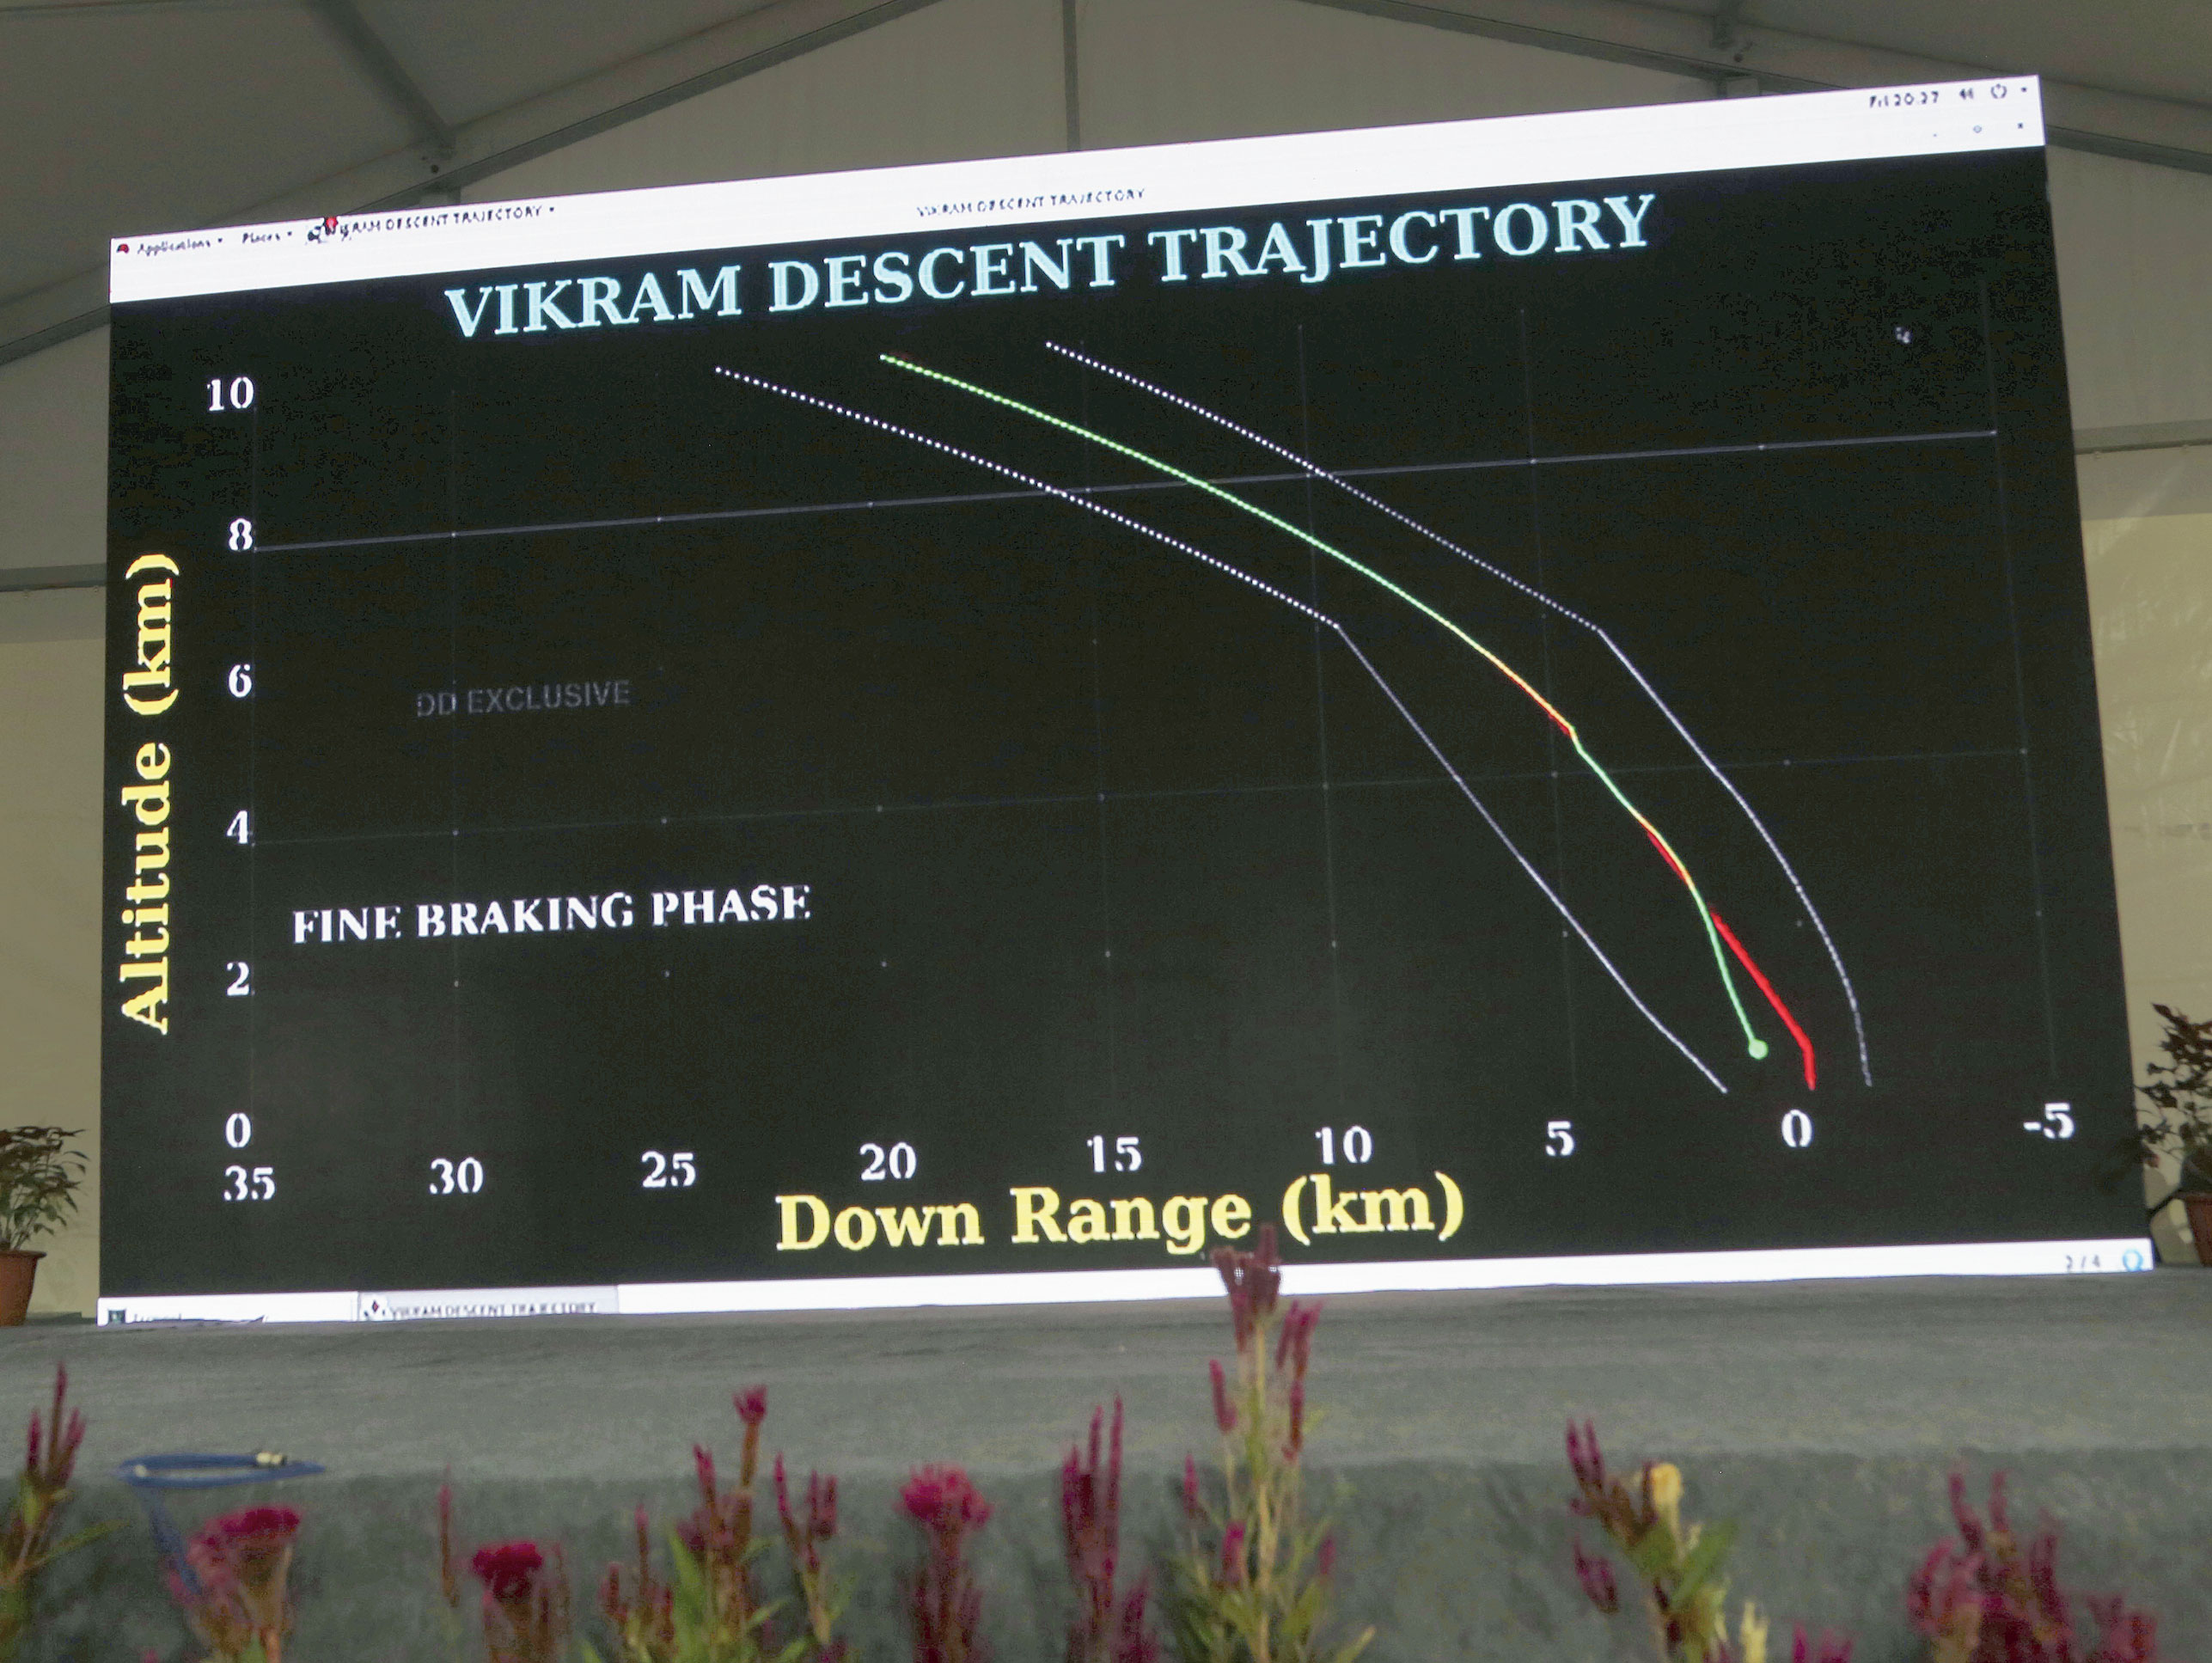 Trajectory graphics of Chandrayaan-2 are displayed on a screen at a media center in Isro on Saturday.